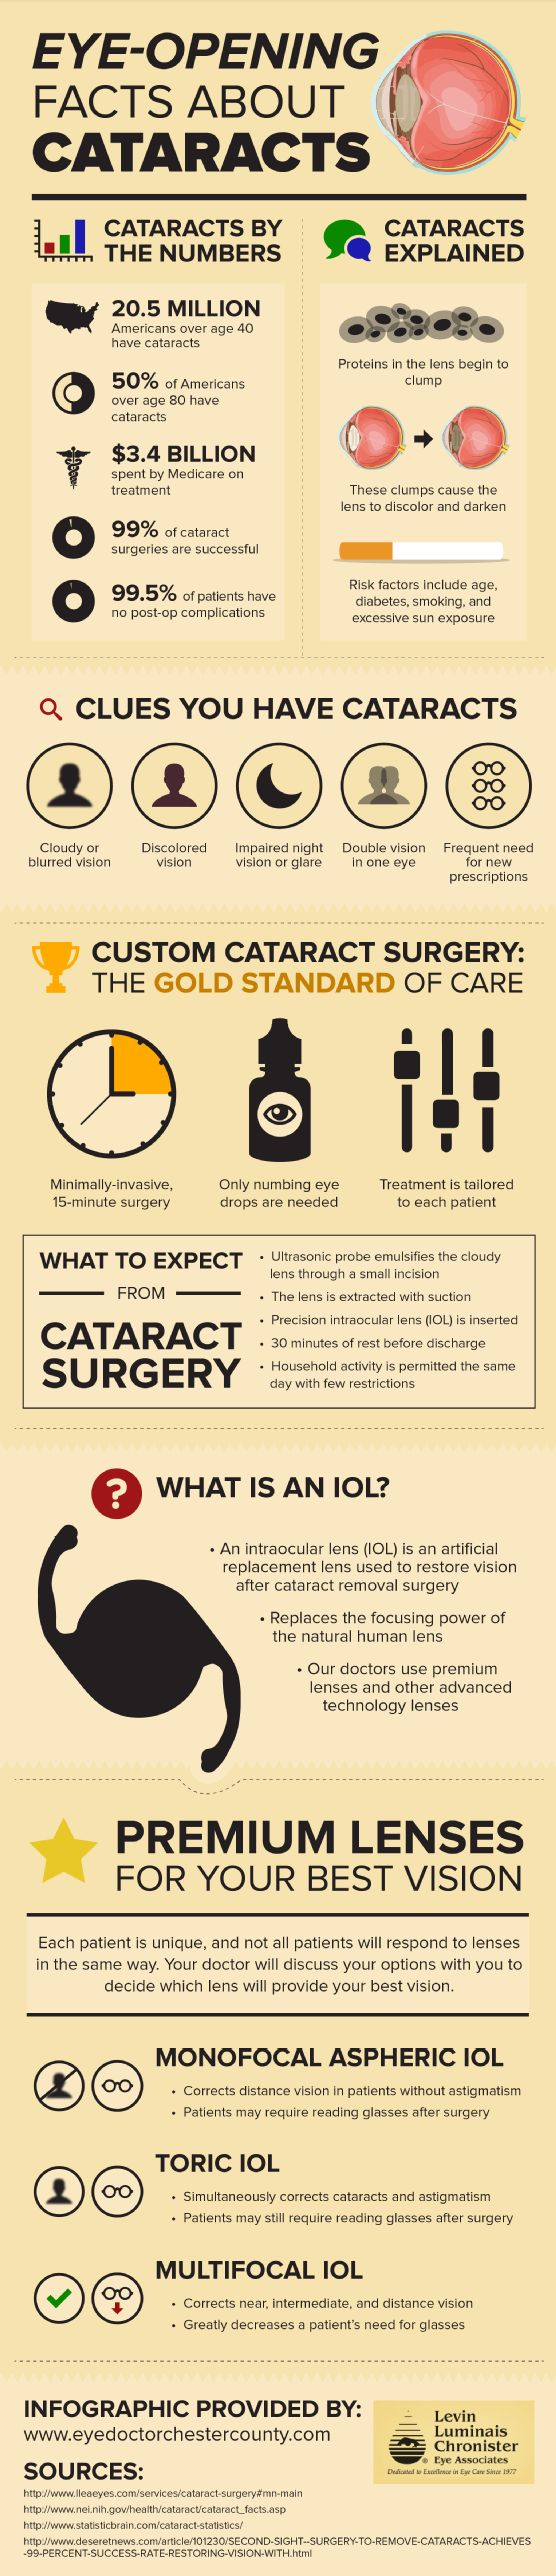 As the eye ages, proteins in the lens can begin to clump. This can lead to cataracts. People who develop  cataracts often experience cloudy or blurred vision and discoloration in their lenses. Click on this  infographic to learn more about cataracts.